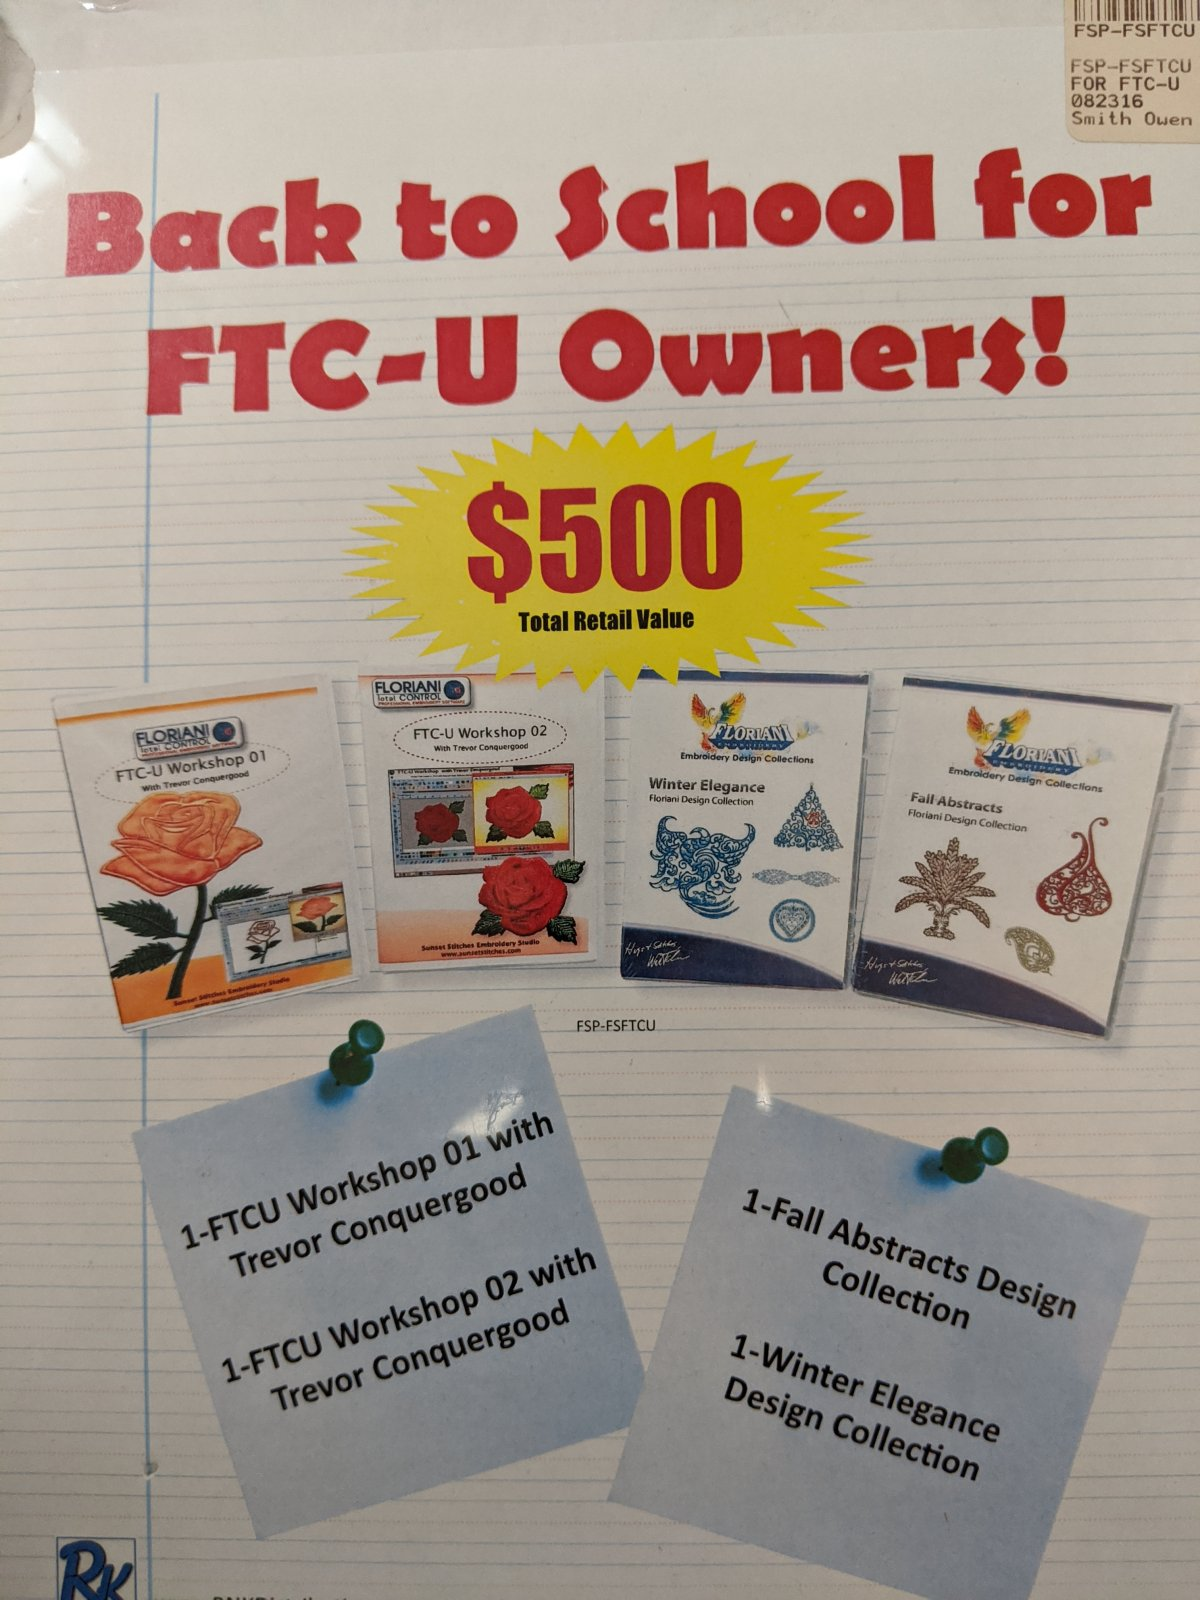 BACK TO SCHOOL FOR FTC-U